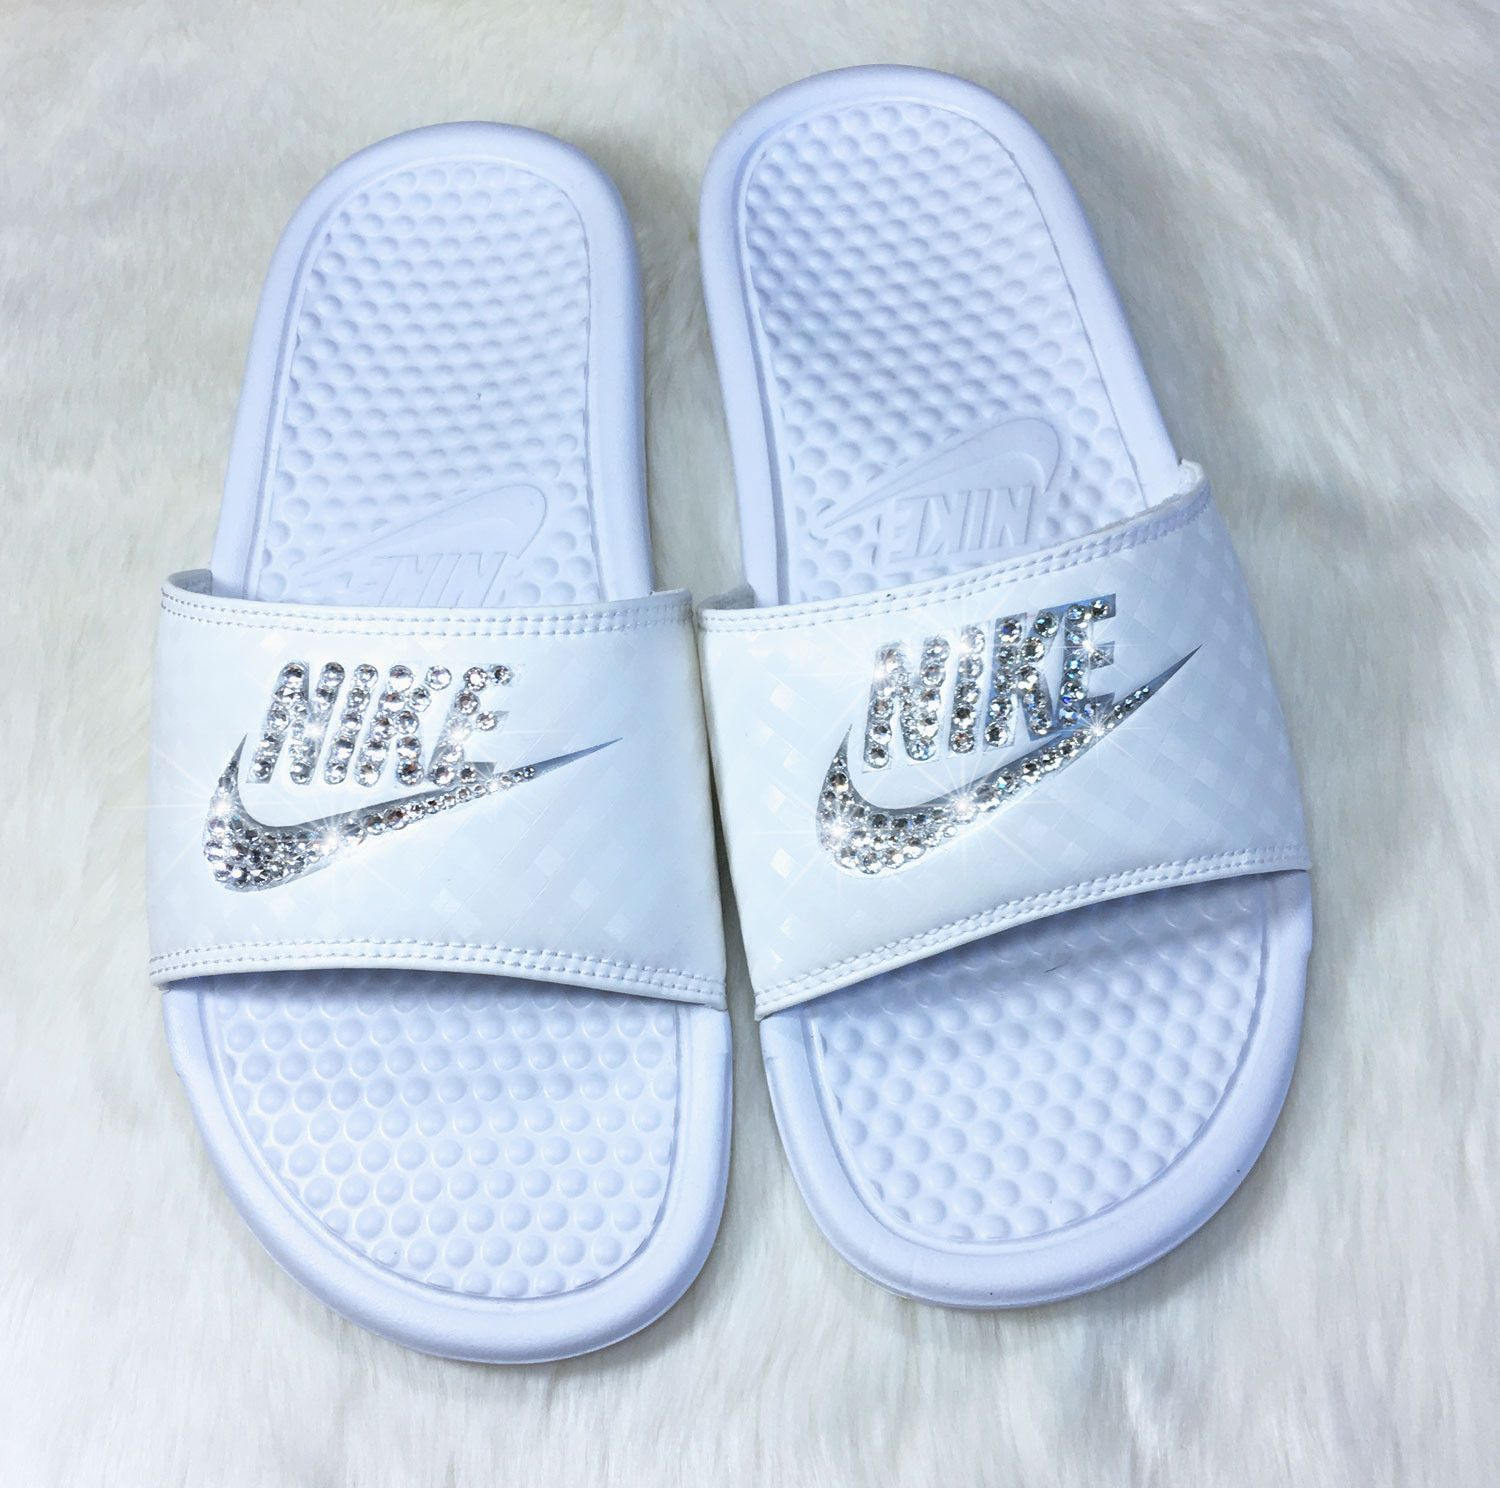 e5274d2cb6aa49 Slide into Summer with these Sparkling Nike Slide Sandals! Custom hand  jeweled with genuine Swarovski Crystals